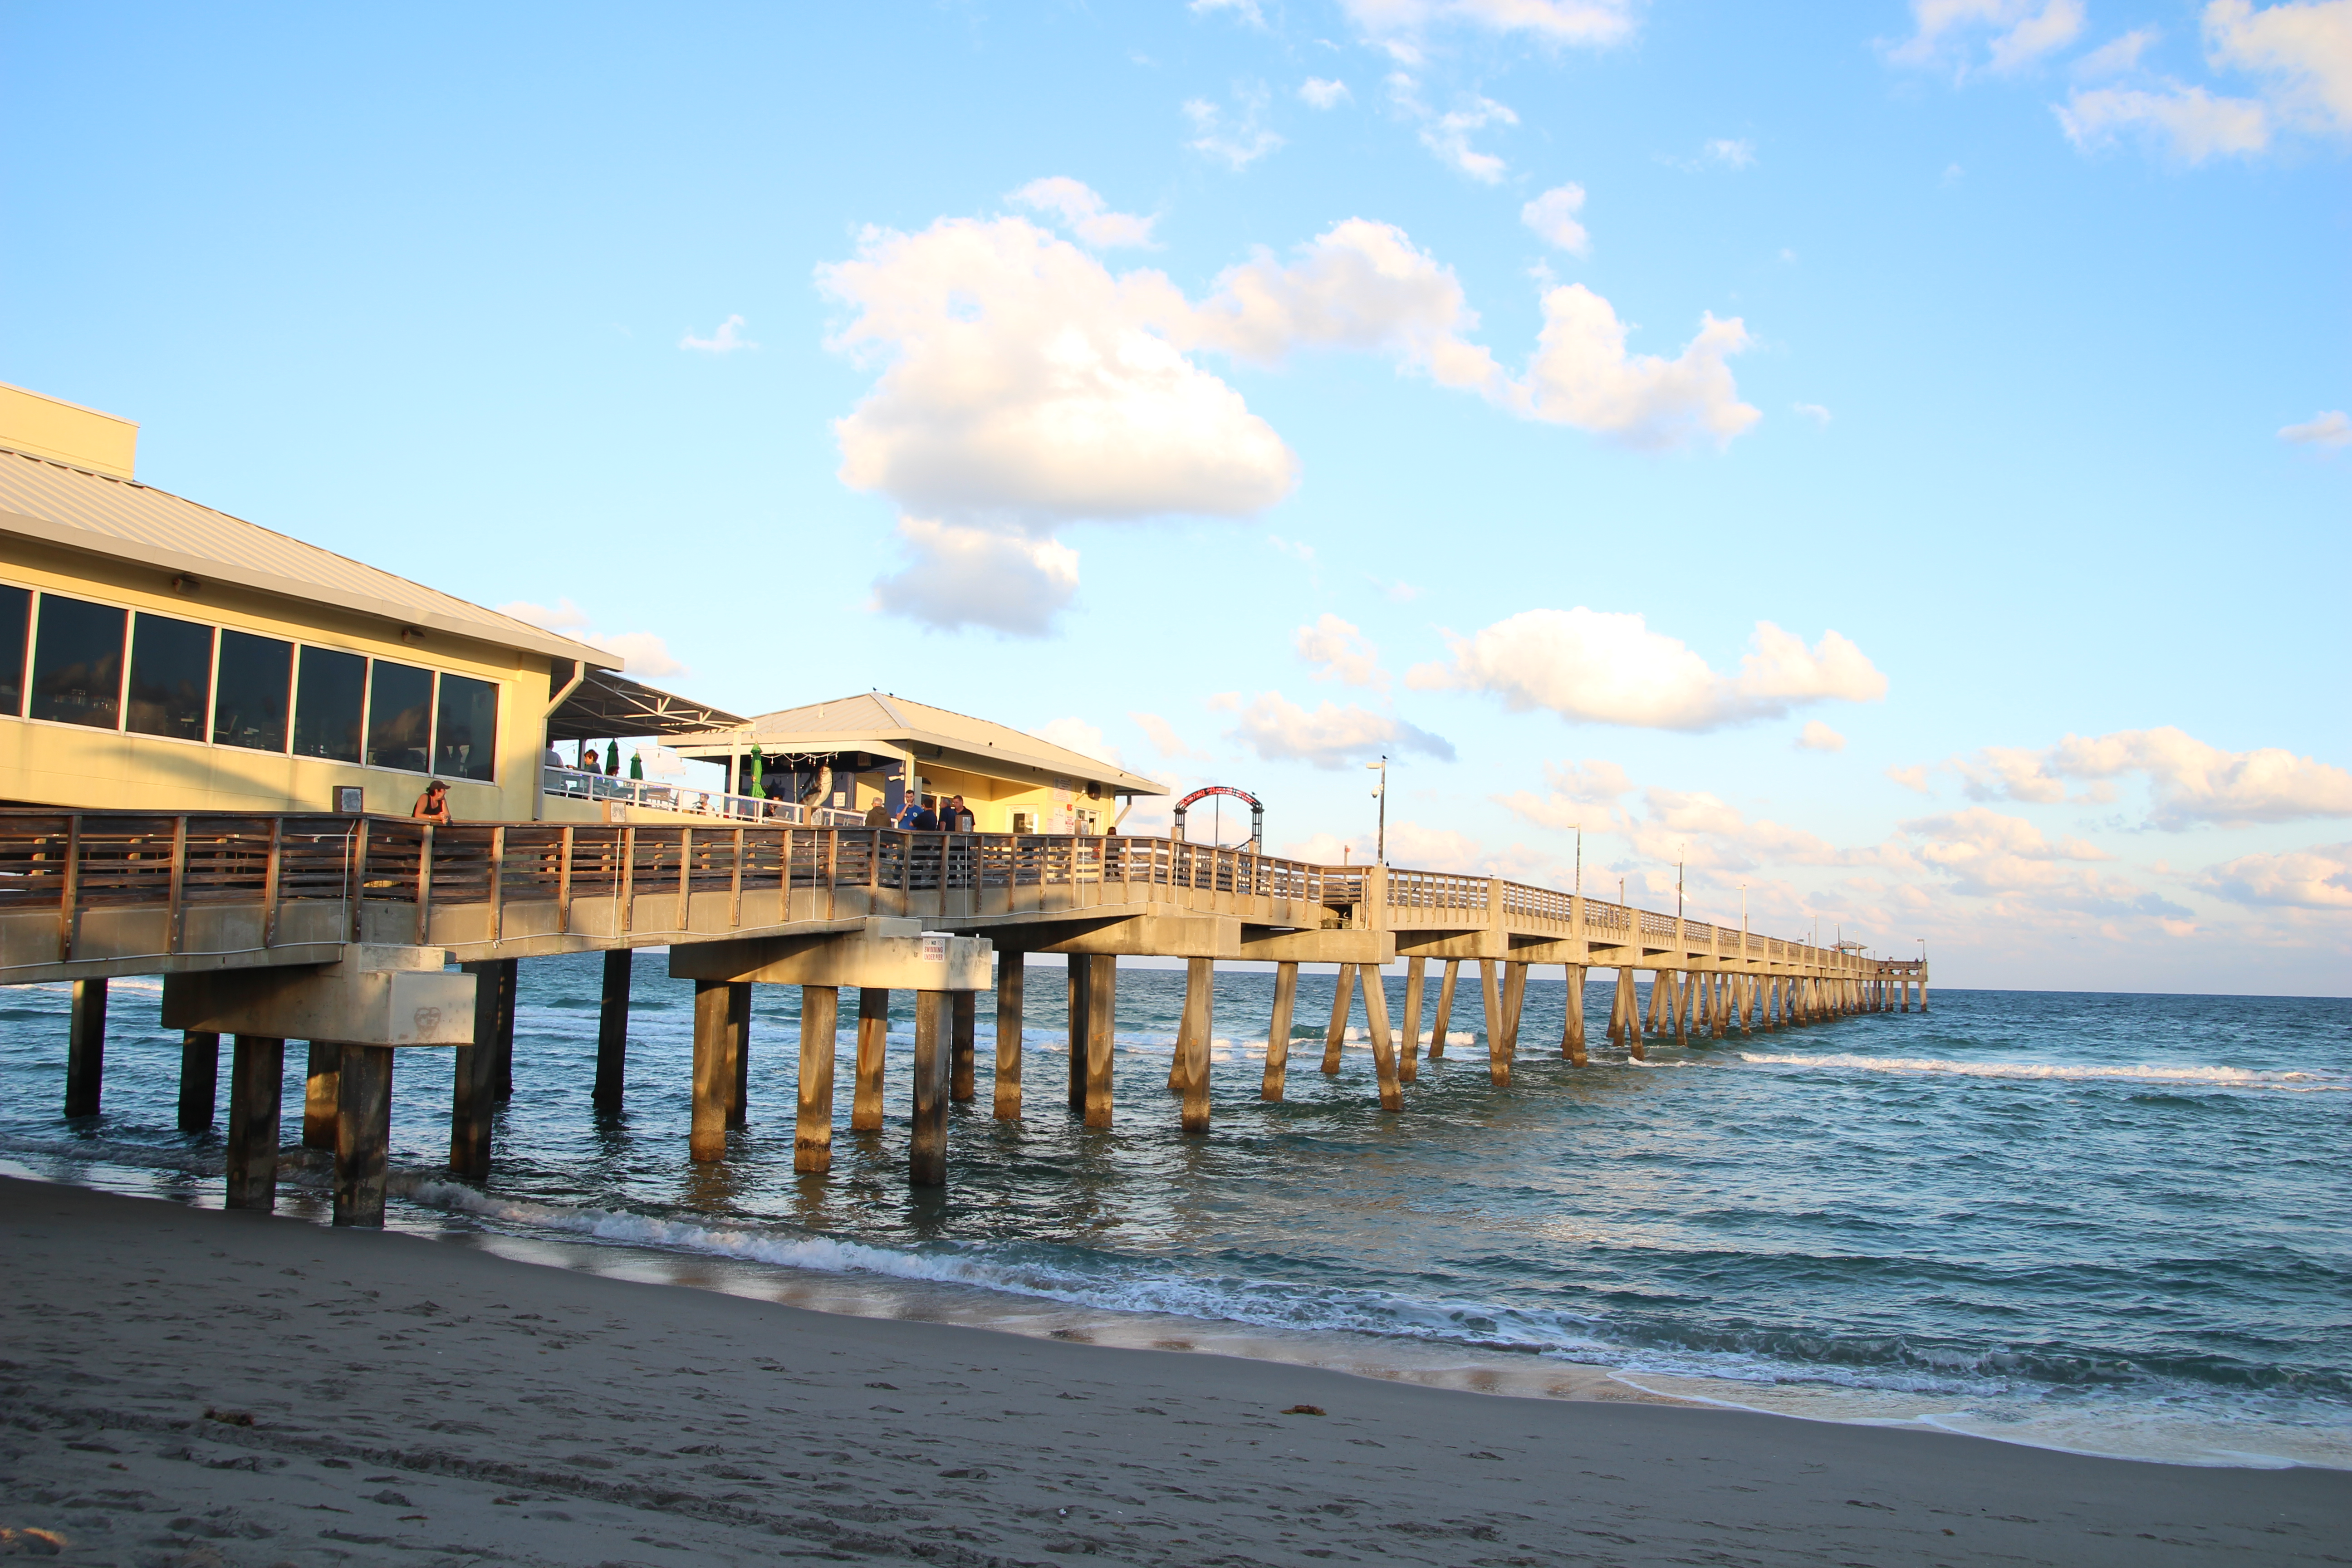 7 things to do in greater fort lauderdale florida ohio for Dania beach fishing pier